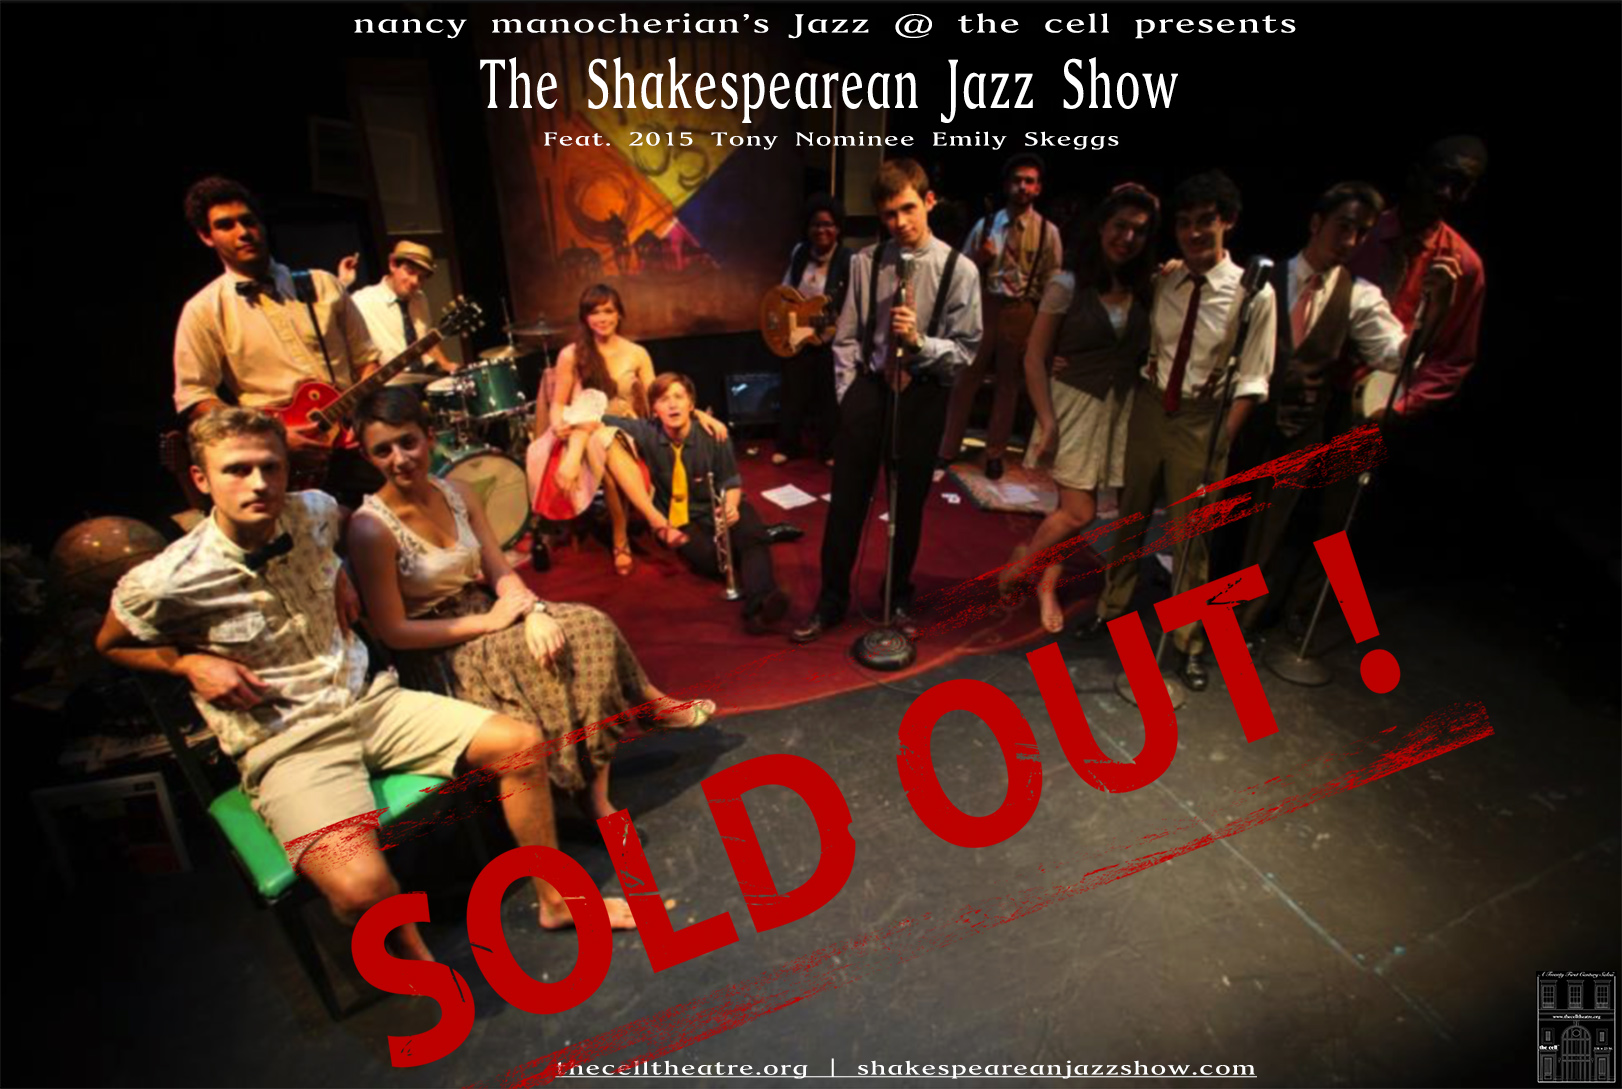 A buoyant celebration of Shakespeare's words colliding with a New Orleans jazz beat featuring Tony nominee, Emily Skeggs.  After   sold out summer performances at nancy manocherian's Jazz at the cell  ,  multiple runs in Boston and New Orleans, New York City is ready for The Shakespearean Jazz Show!   Energetic and innovative, The Shakespearean Jazz Show reinvigorates and recontextualizes Shakespearean performance. Experience how the loose, improvisatory nature of jazz music can free Shakespearean text, allowing the feeling and intent of the words to be expressed in a completely new way. The Nine Worthies band, whose name is born from Shakespeare's Love's Labour's Lost, collaborates with the ensemble, providing an unforgettable parade of Shakespearean sonnets, songs and scenes composed to original New Orleans-style jazz. Don't miss your chance to enjoy the playful antics and soulful music live in The Shakespearean Jazz Show, a Boston-born project created by young artists from Emerson College and Berklee College of Music.